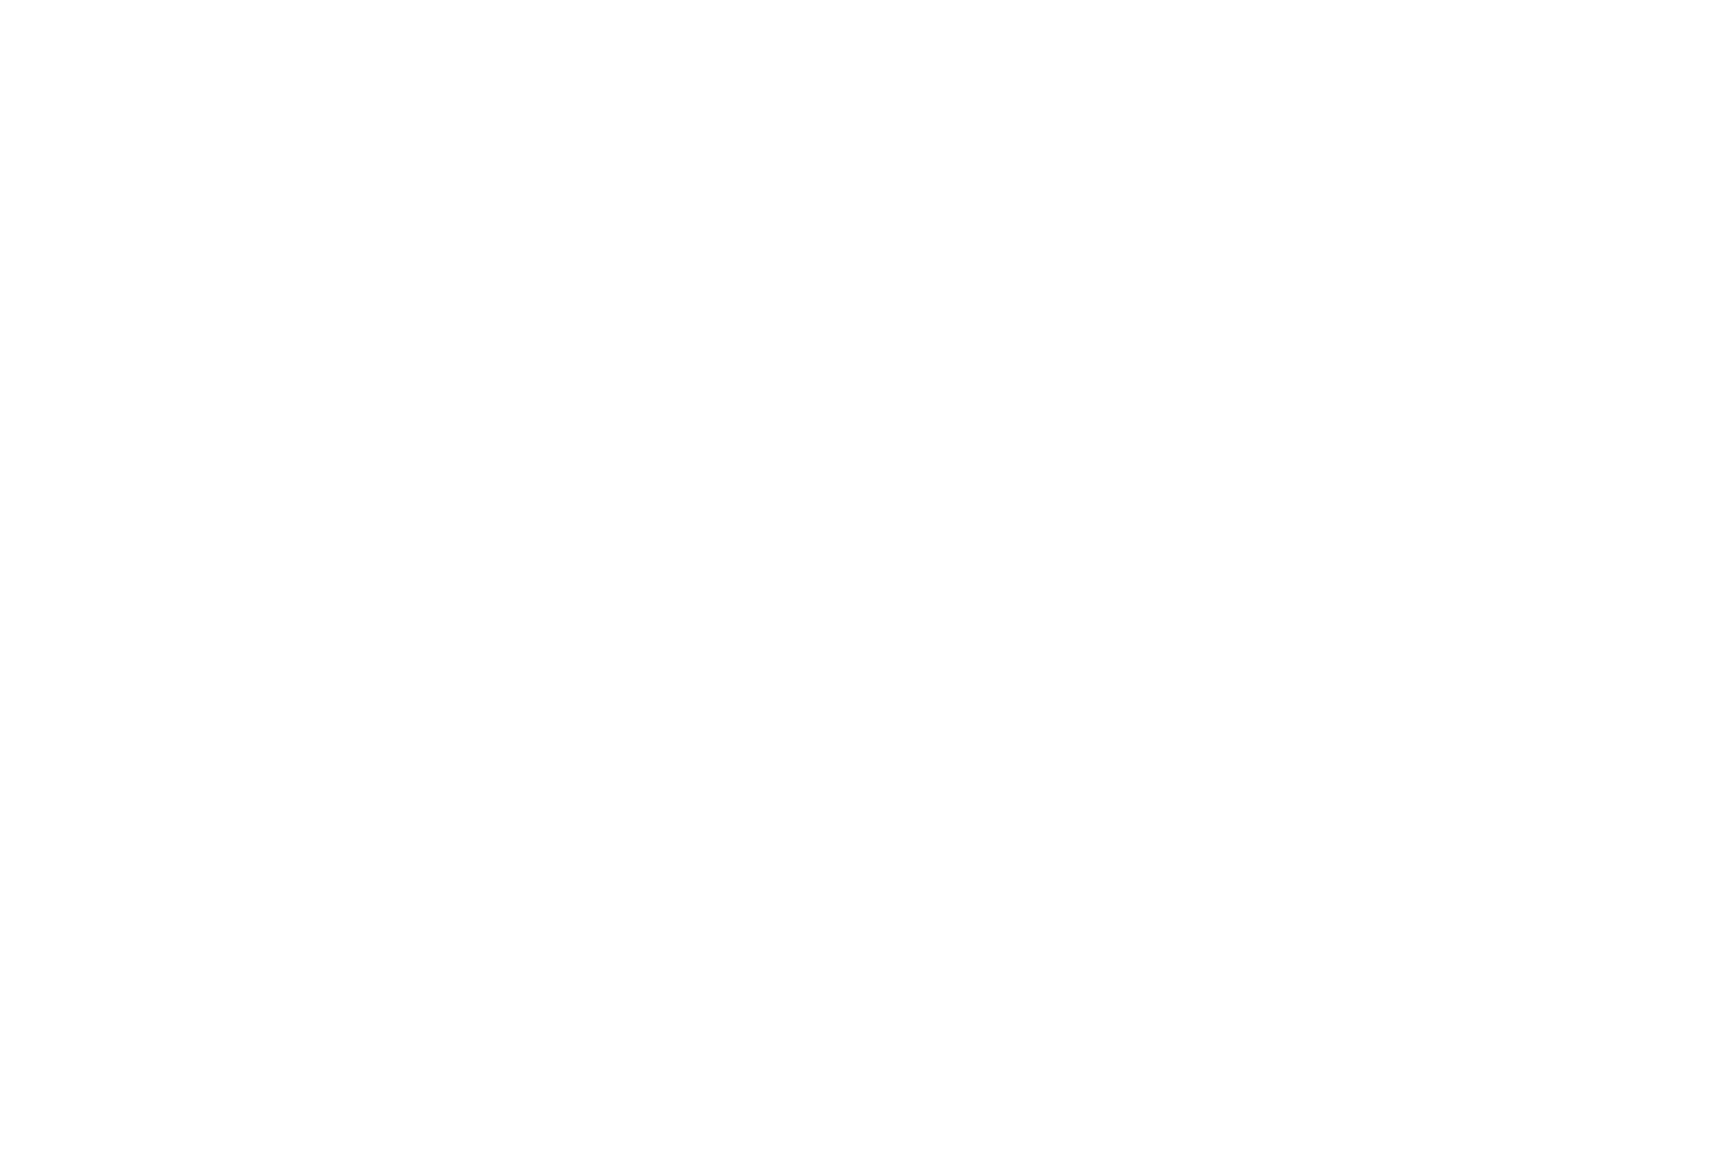 TOP 5 FINALIST - Page Turner Faith-Based Screenplay Awards - 2020